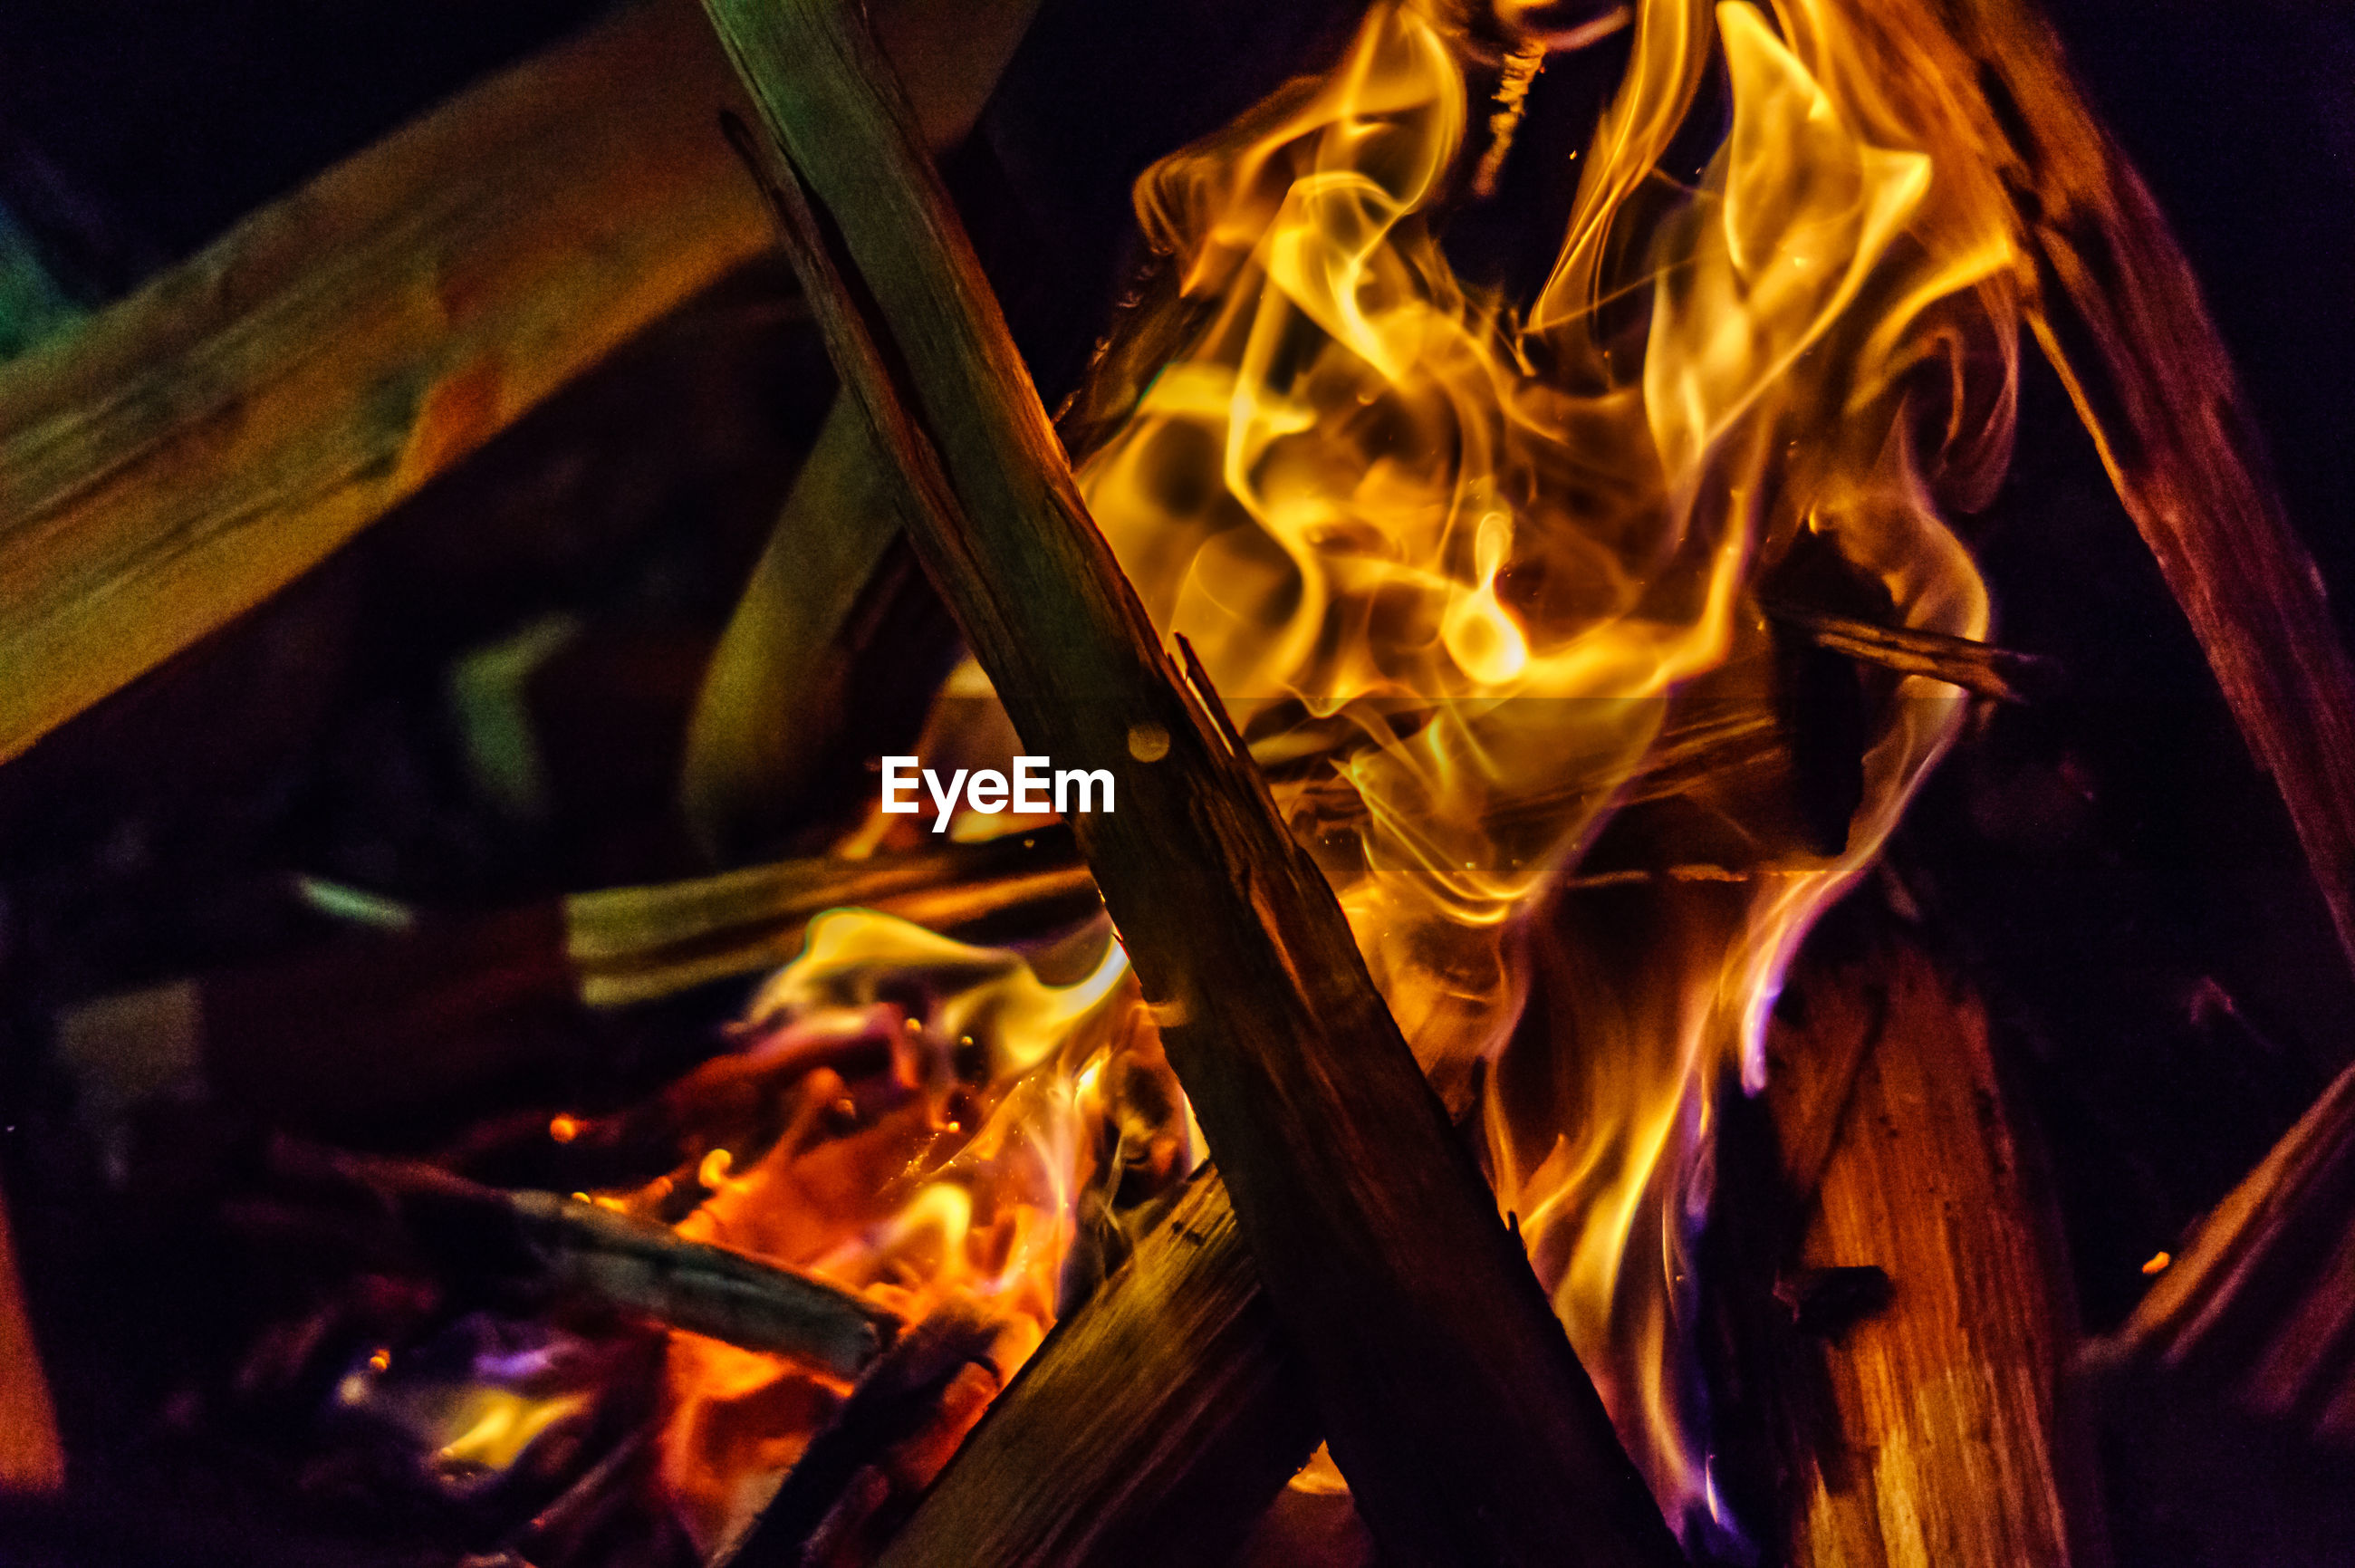 Close-up of burning fire at night